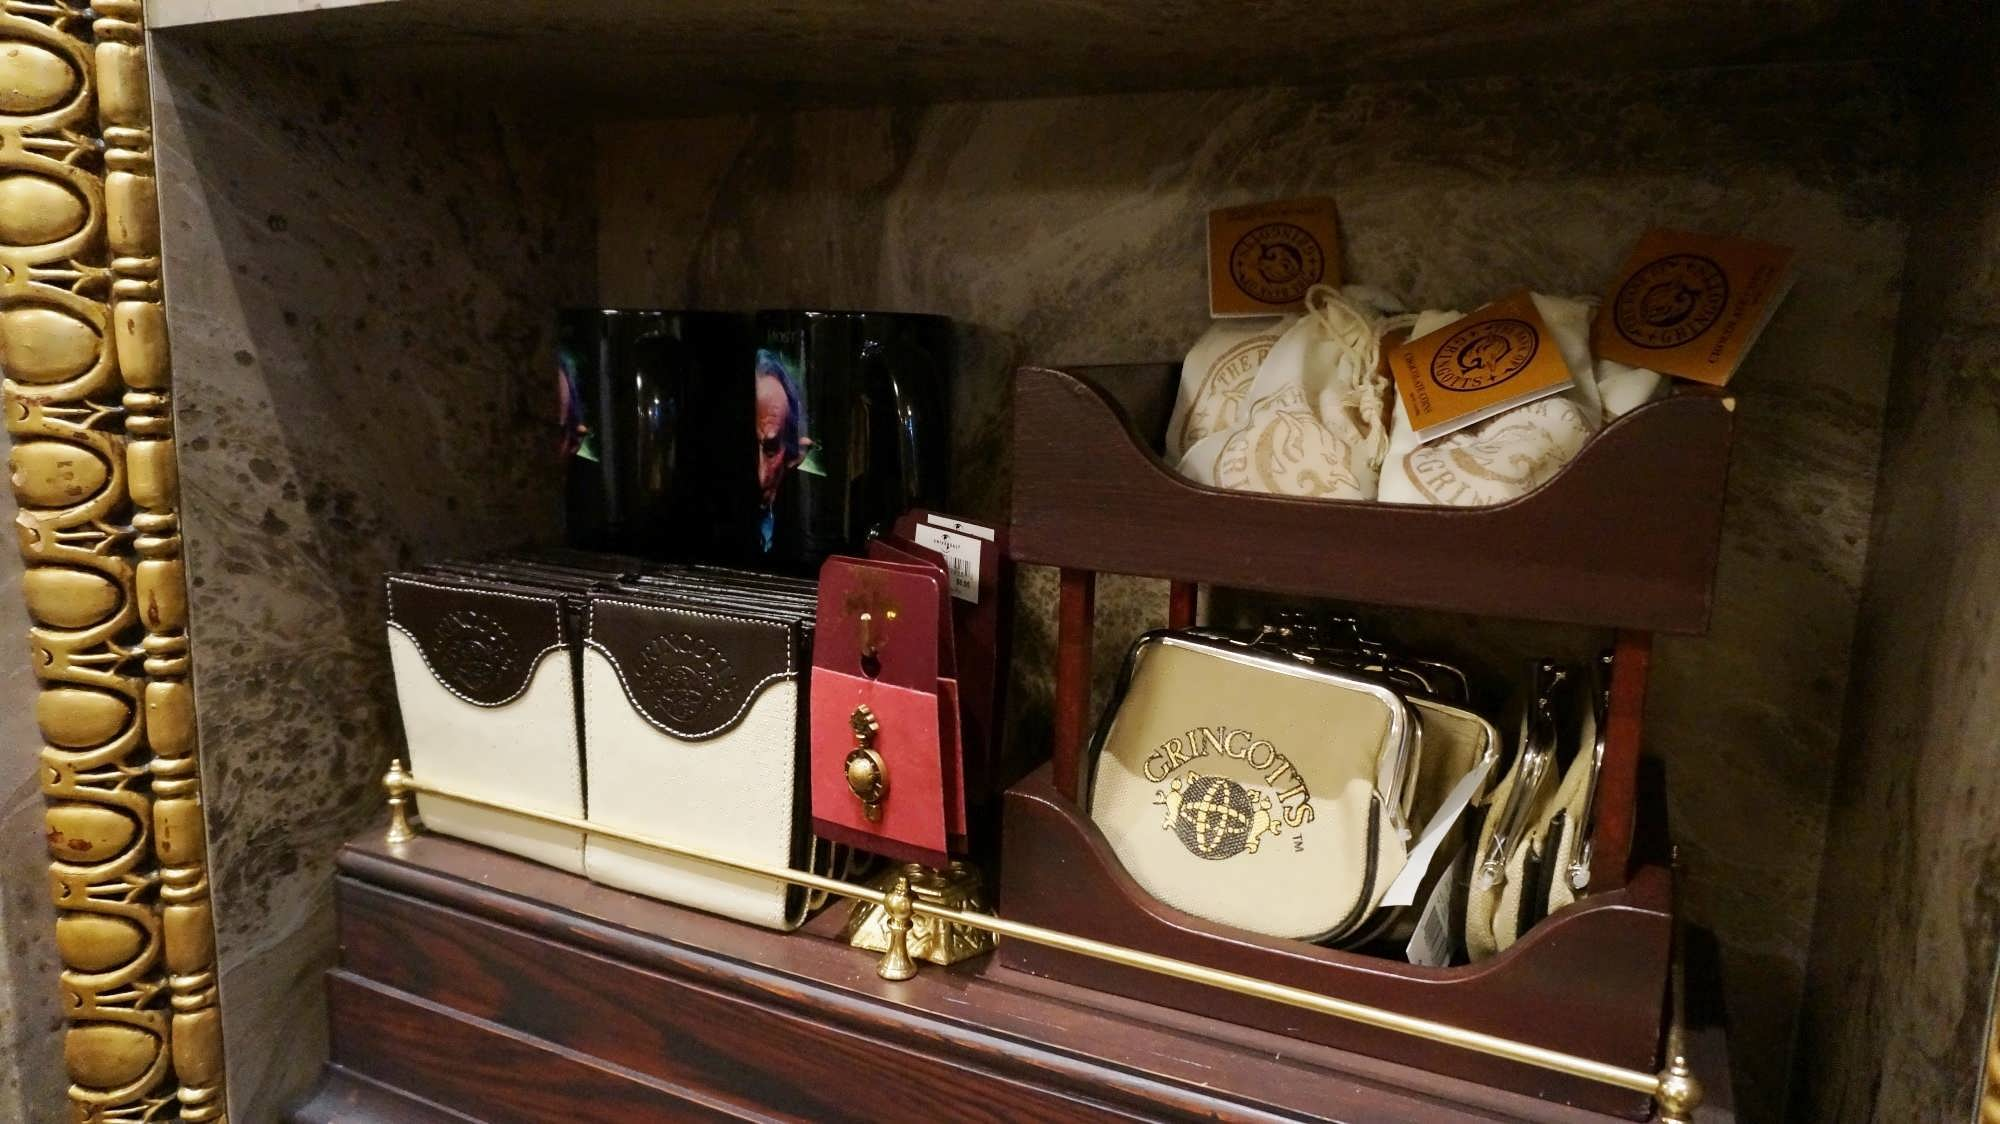 Gringotts Money Exchange merchandise at the Wizarding World of Harry Potter - Diagon Alley